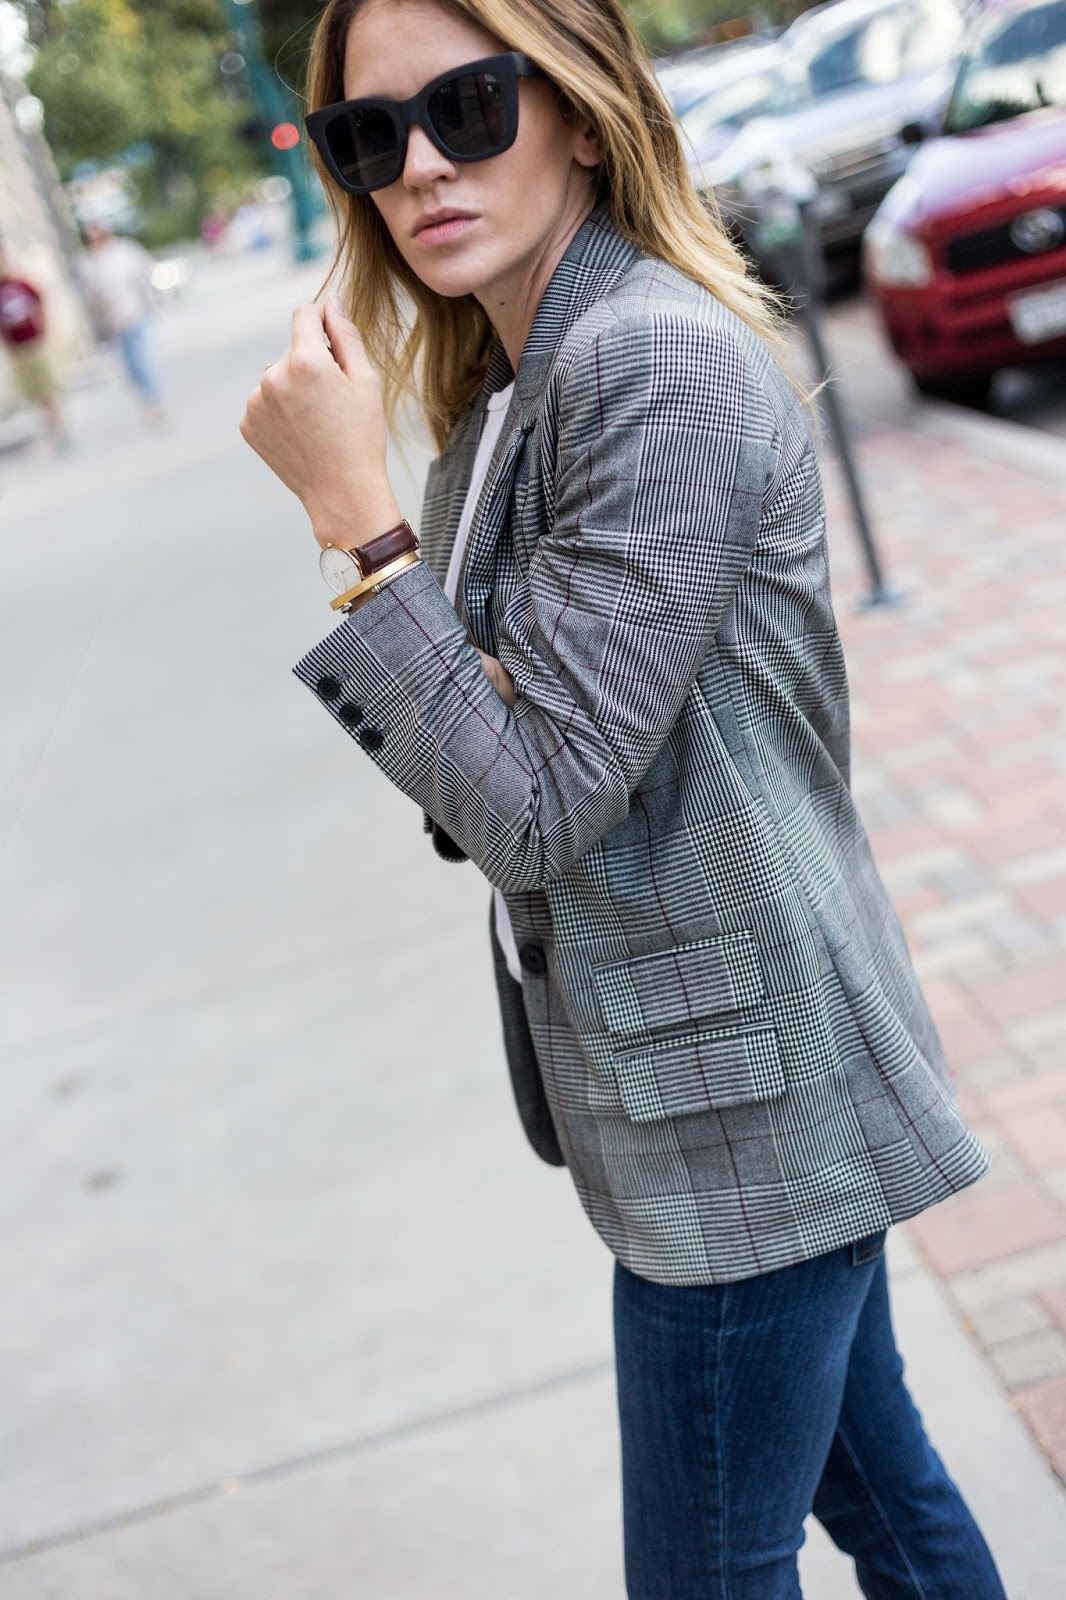 Boyfriend Blazer In Plaid Pattern - Boyfriend Blazer by Colorado fashion blogger Eat Pray Wear Love